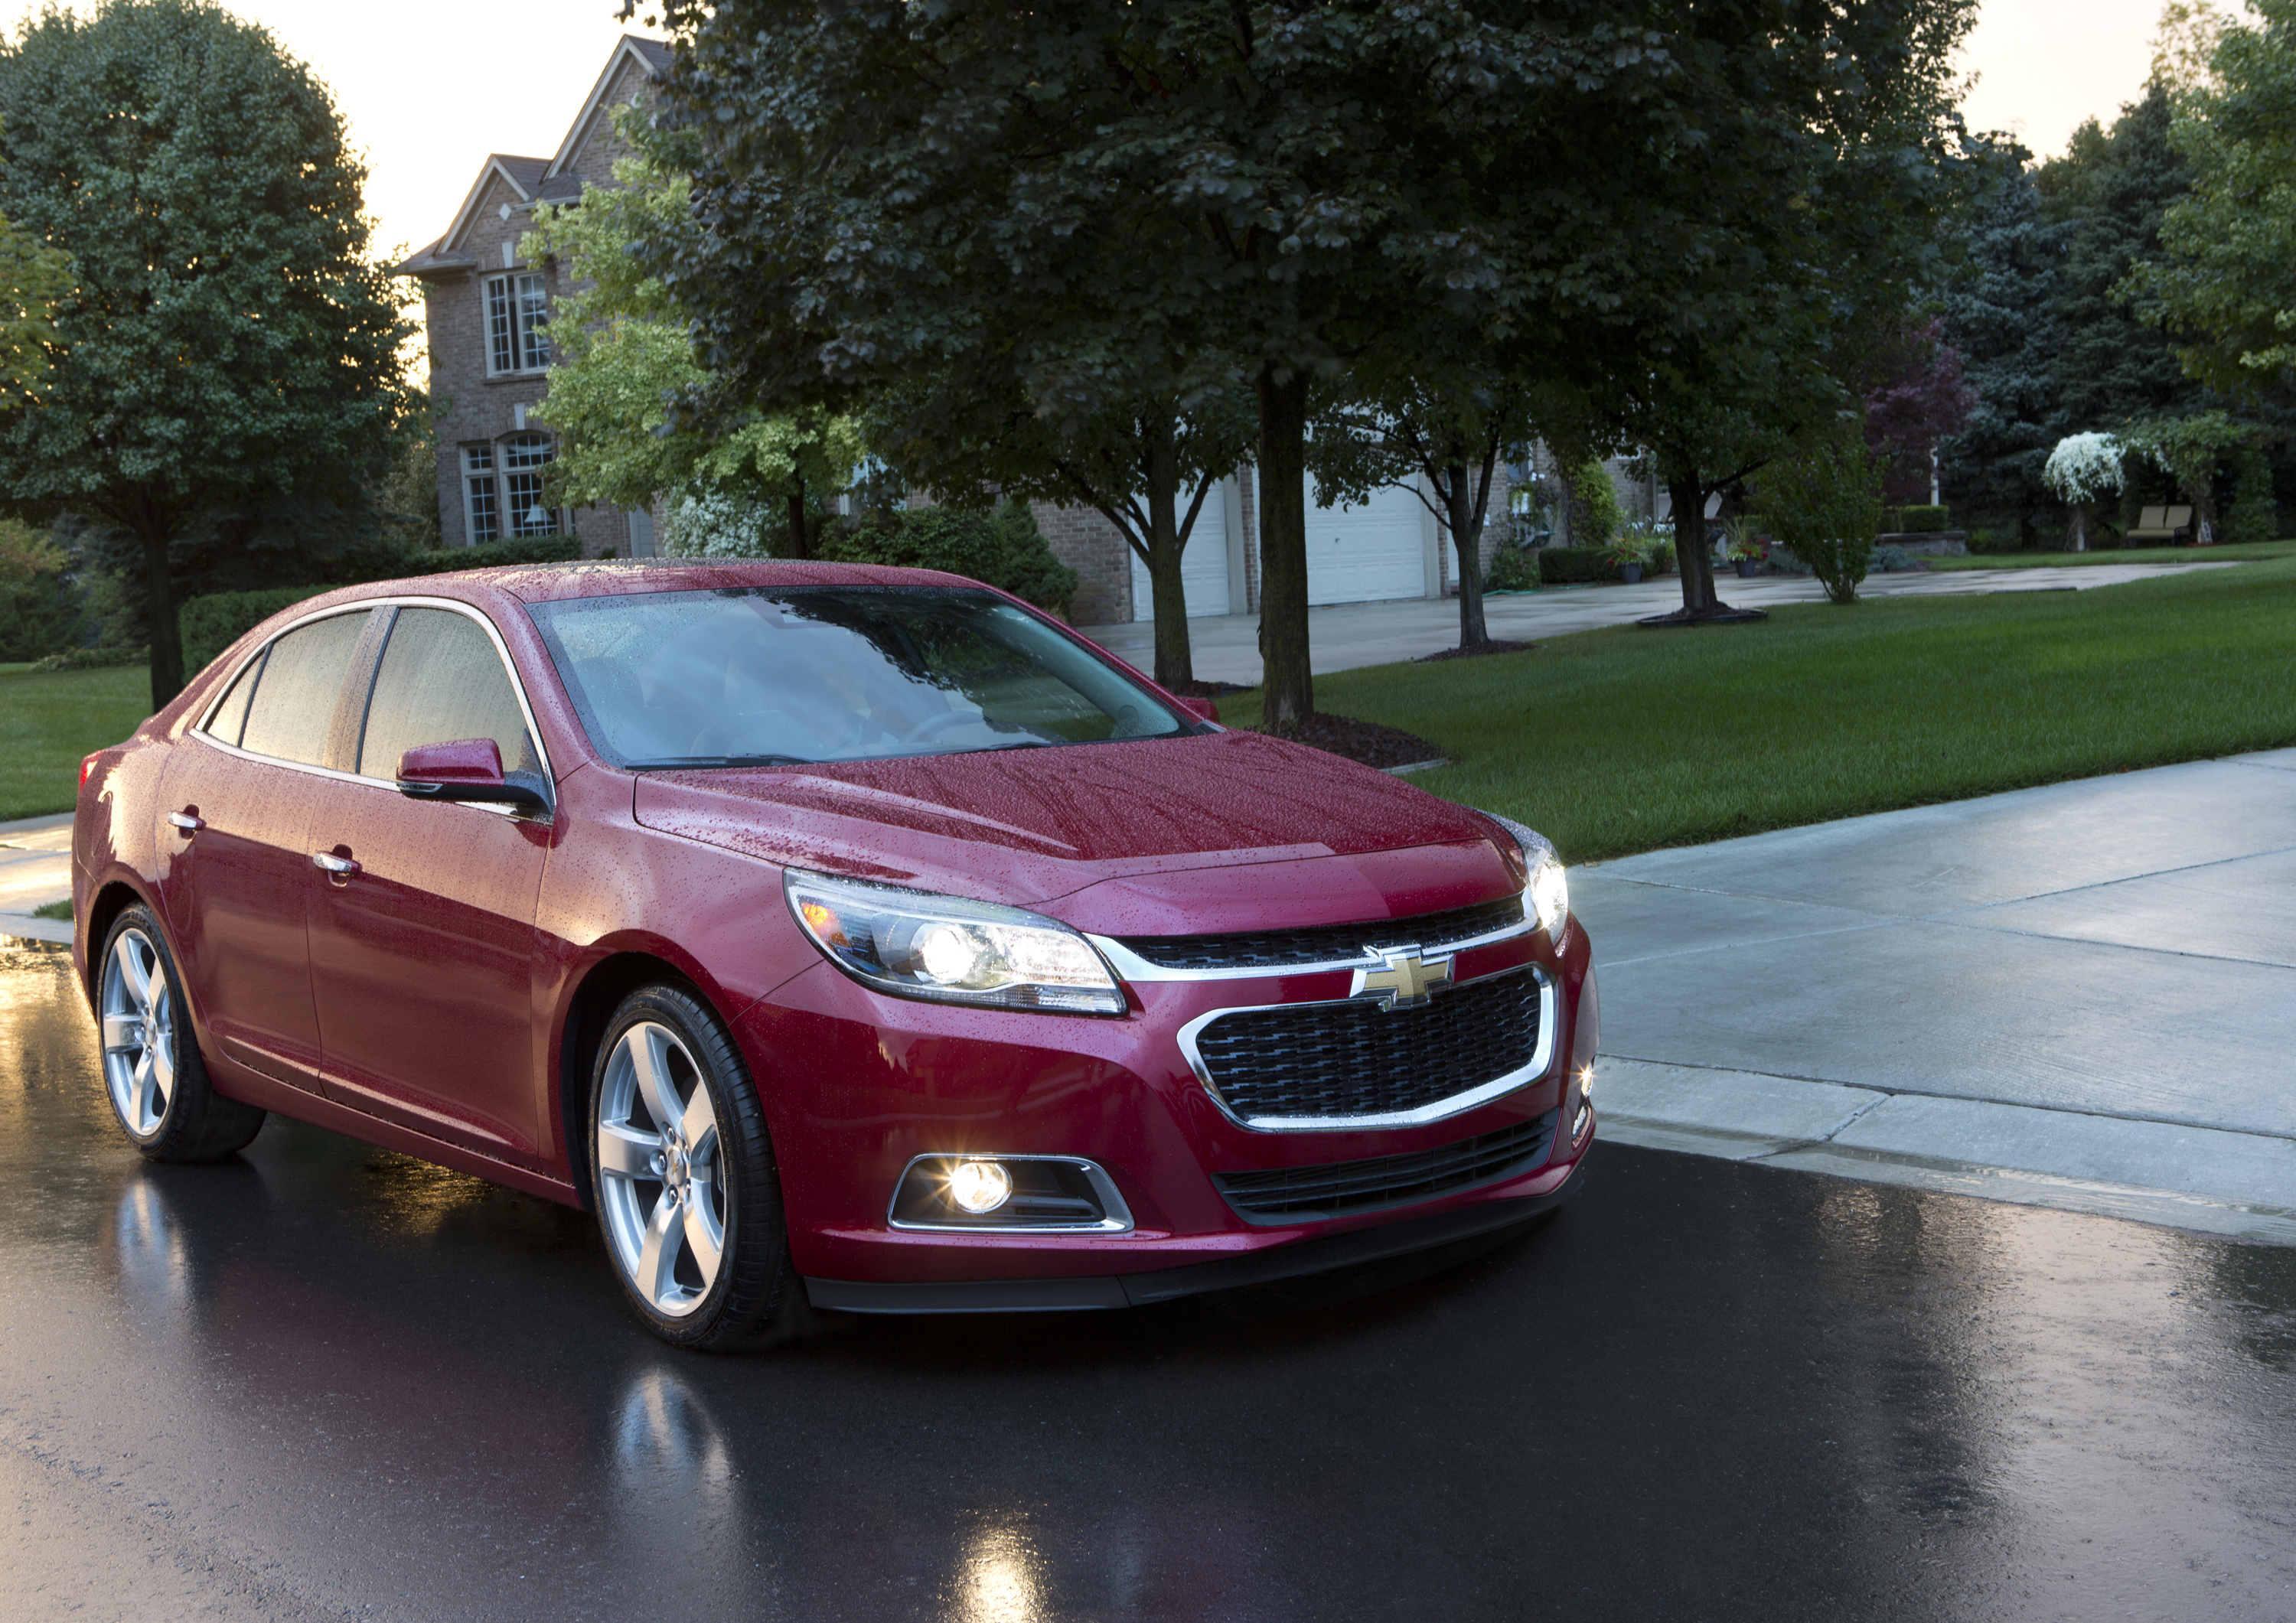 2014 Chevrolet Malibu 010 gm announces five safety recalls  at nearapp.co